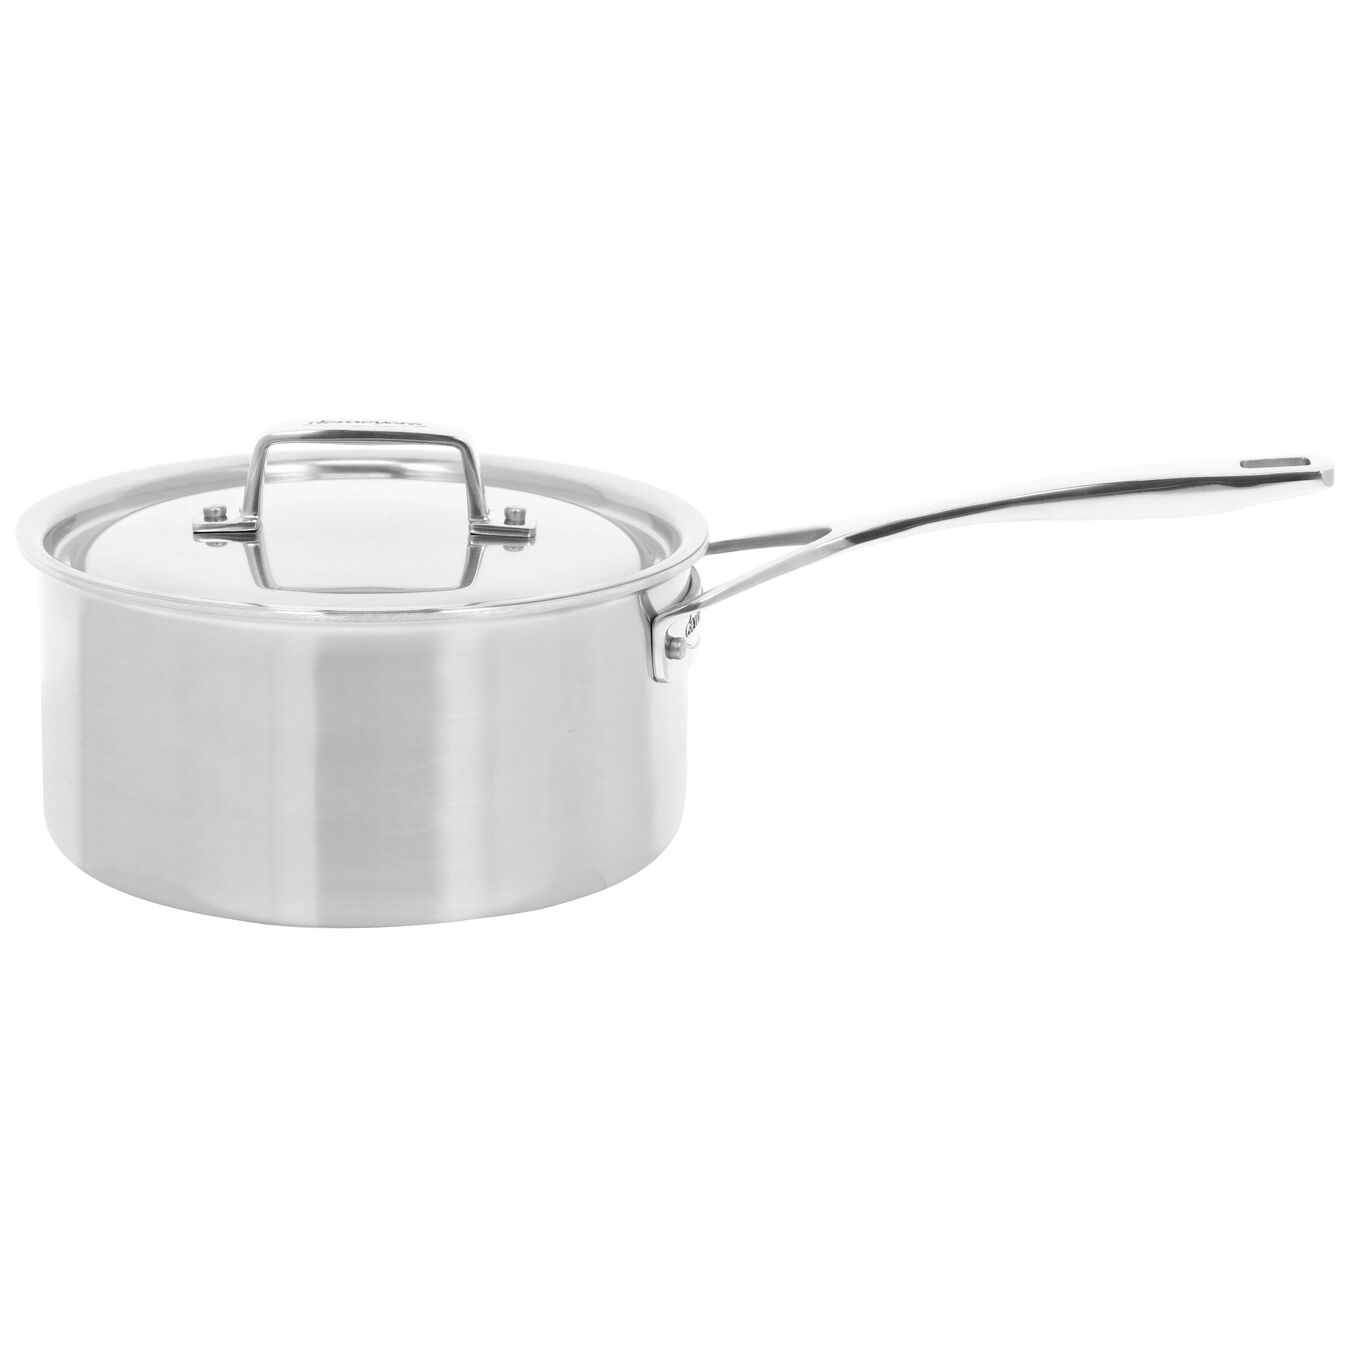 2.8 l round sauce pan with lid 3QT, silver,,large 1